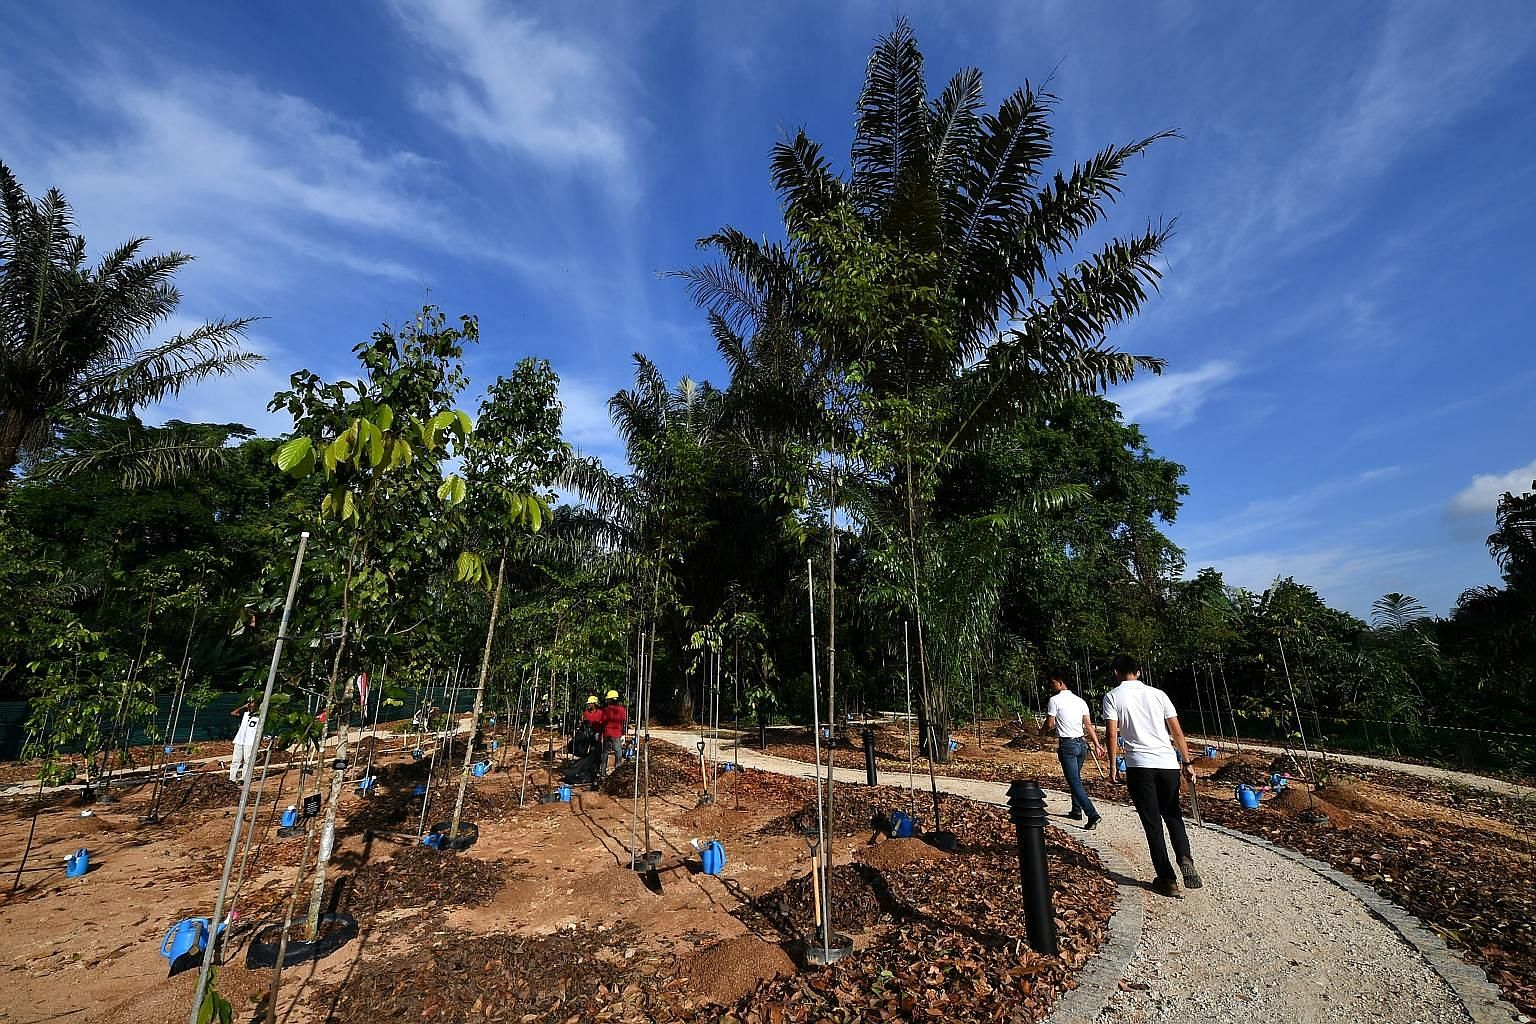 A community tree-planting site at the upcoming OCBC Arboretum in the Botanic Gardens. The arboretum will serve as a test bed for new tech tools for tree maintenance that will be progressively rolled out across the island.